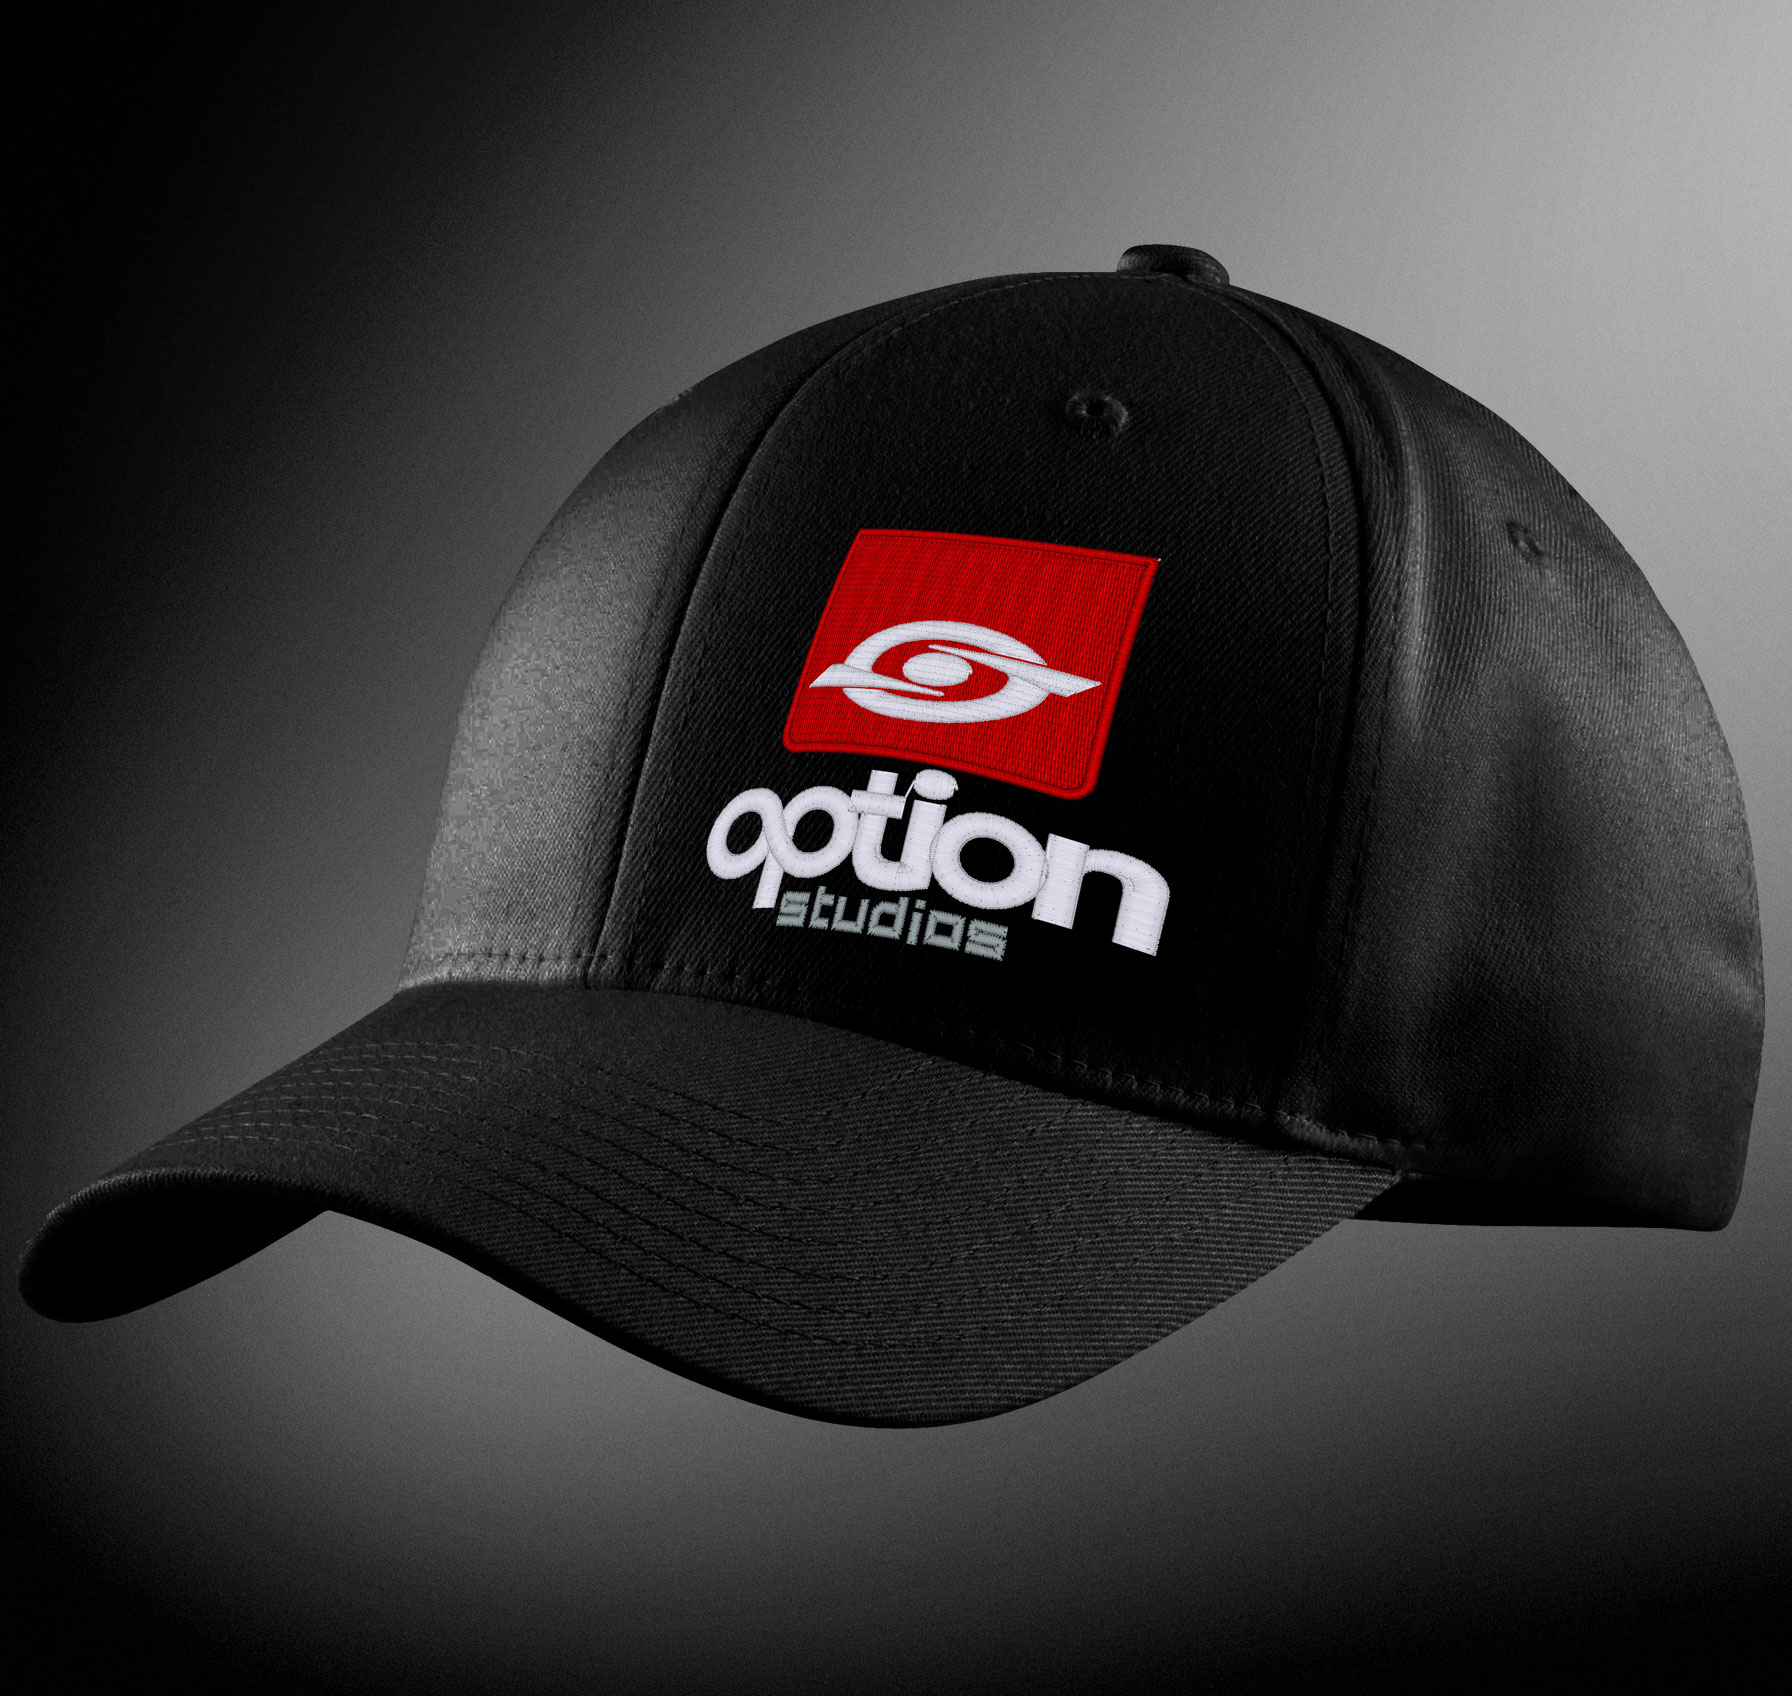 OPTION Studios FlexFit Hat